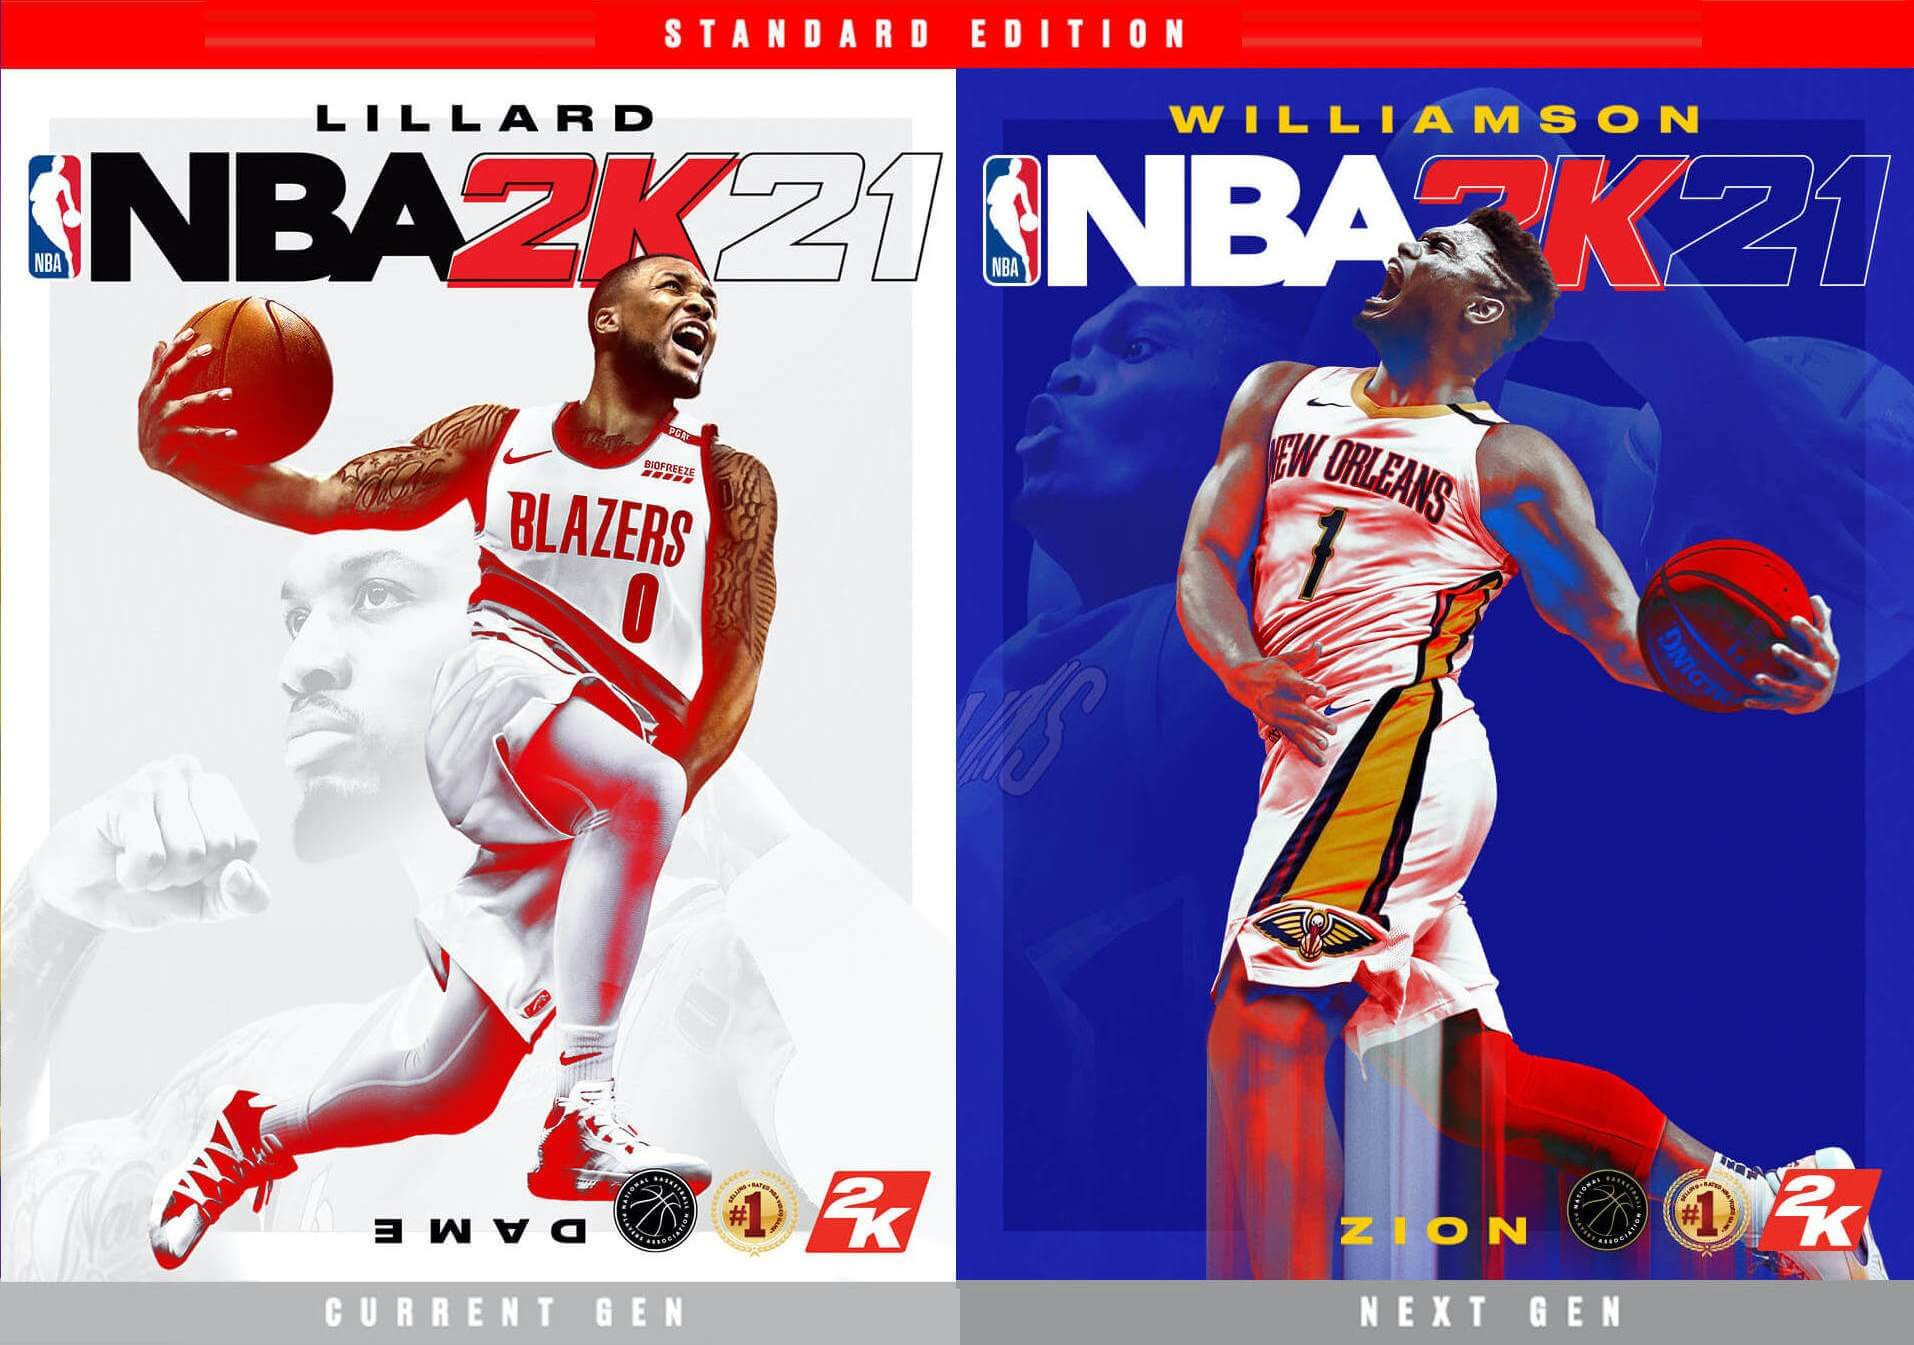 Nba 2k21 Comes With A Price Bump For Next Gen Consoles